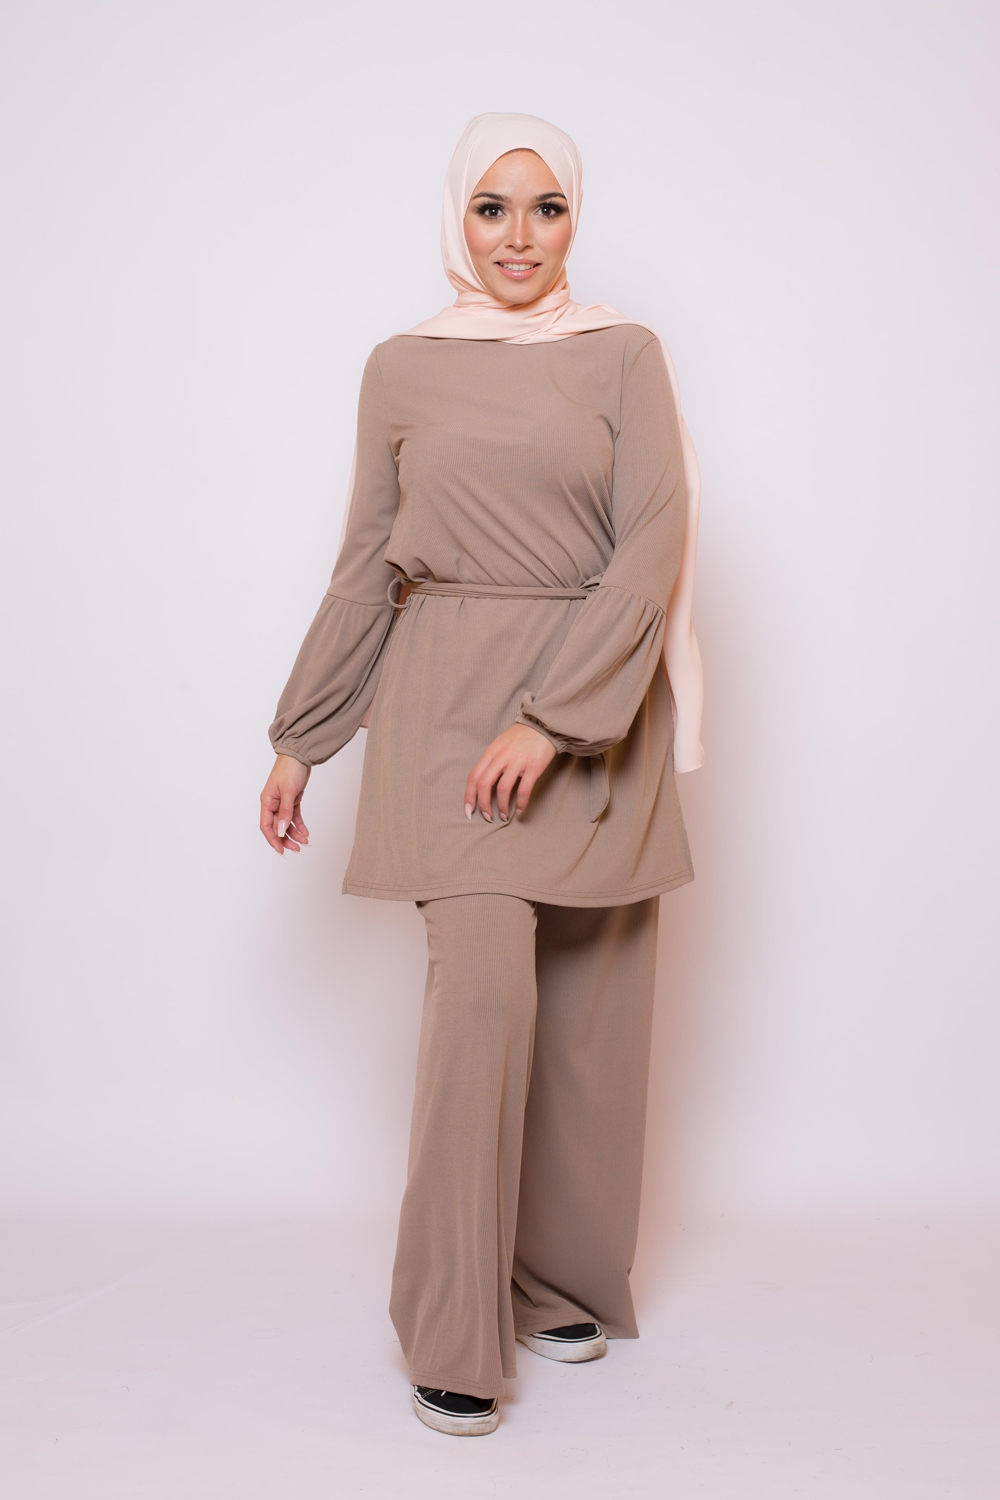 Ensemble casual chic taupe